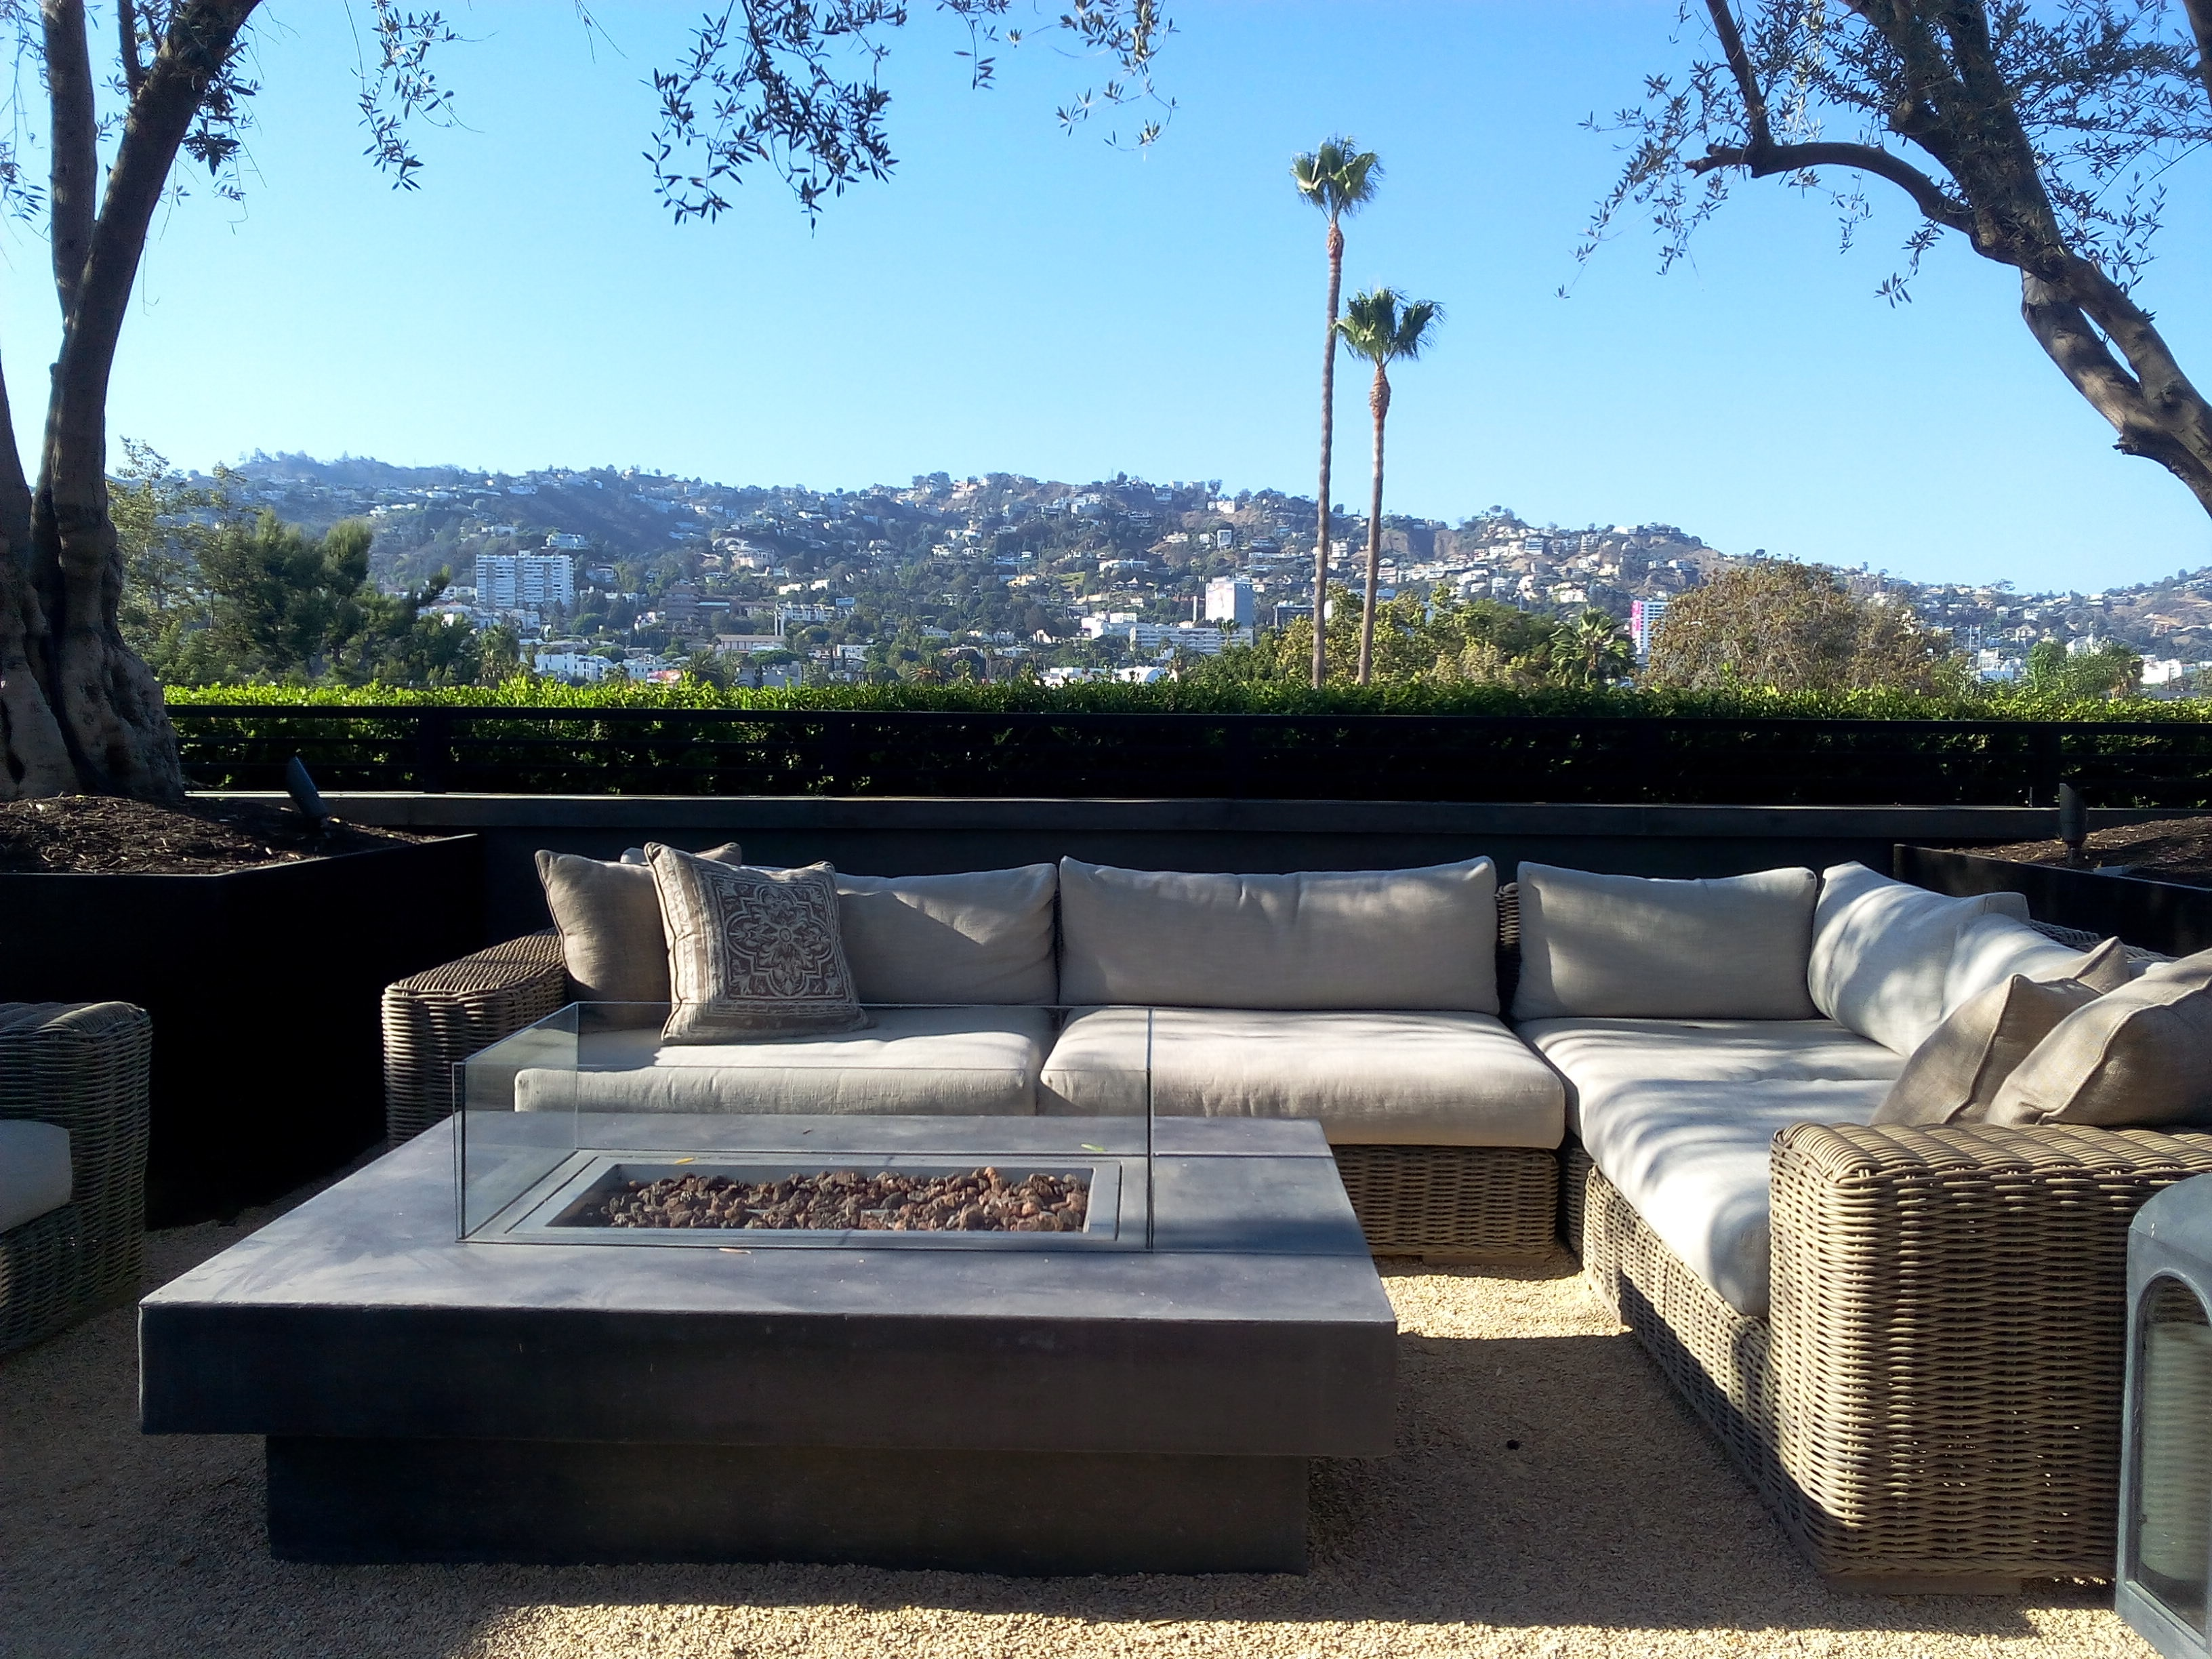 Peachy The Sexiest Weho Lounge May Actually Be Restoration Hardware Download Free Architecture Designs Scobabritishbridgeorg